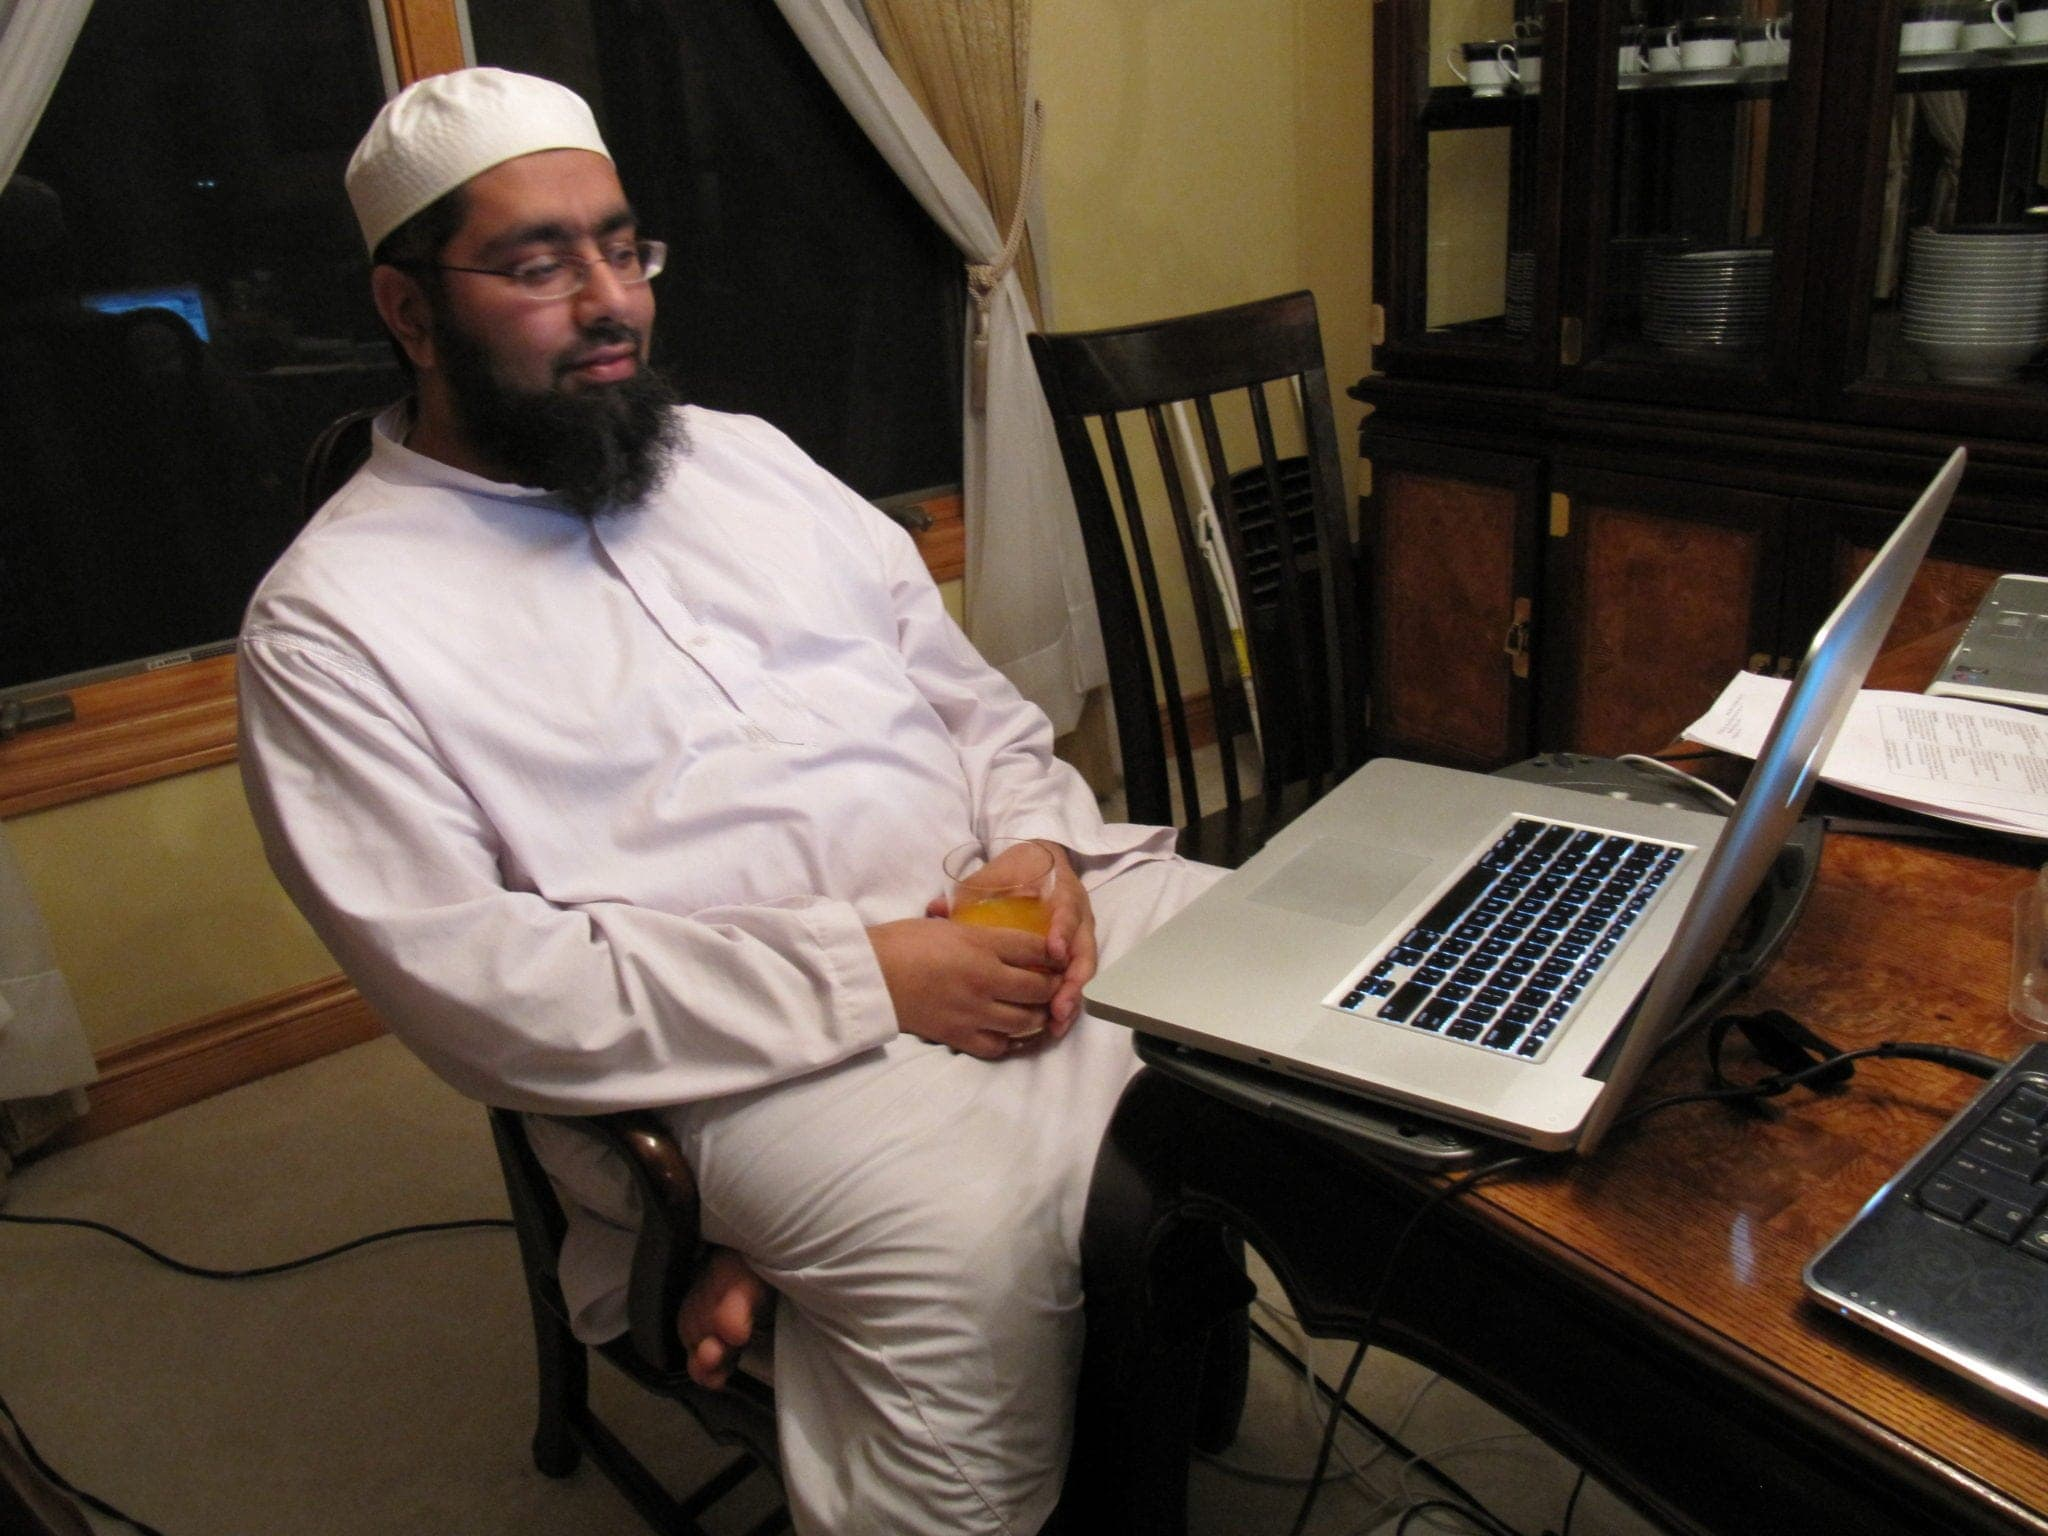 Shaykh Faraz checking his e-mail after a long day of meetings on Saturday.